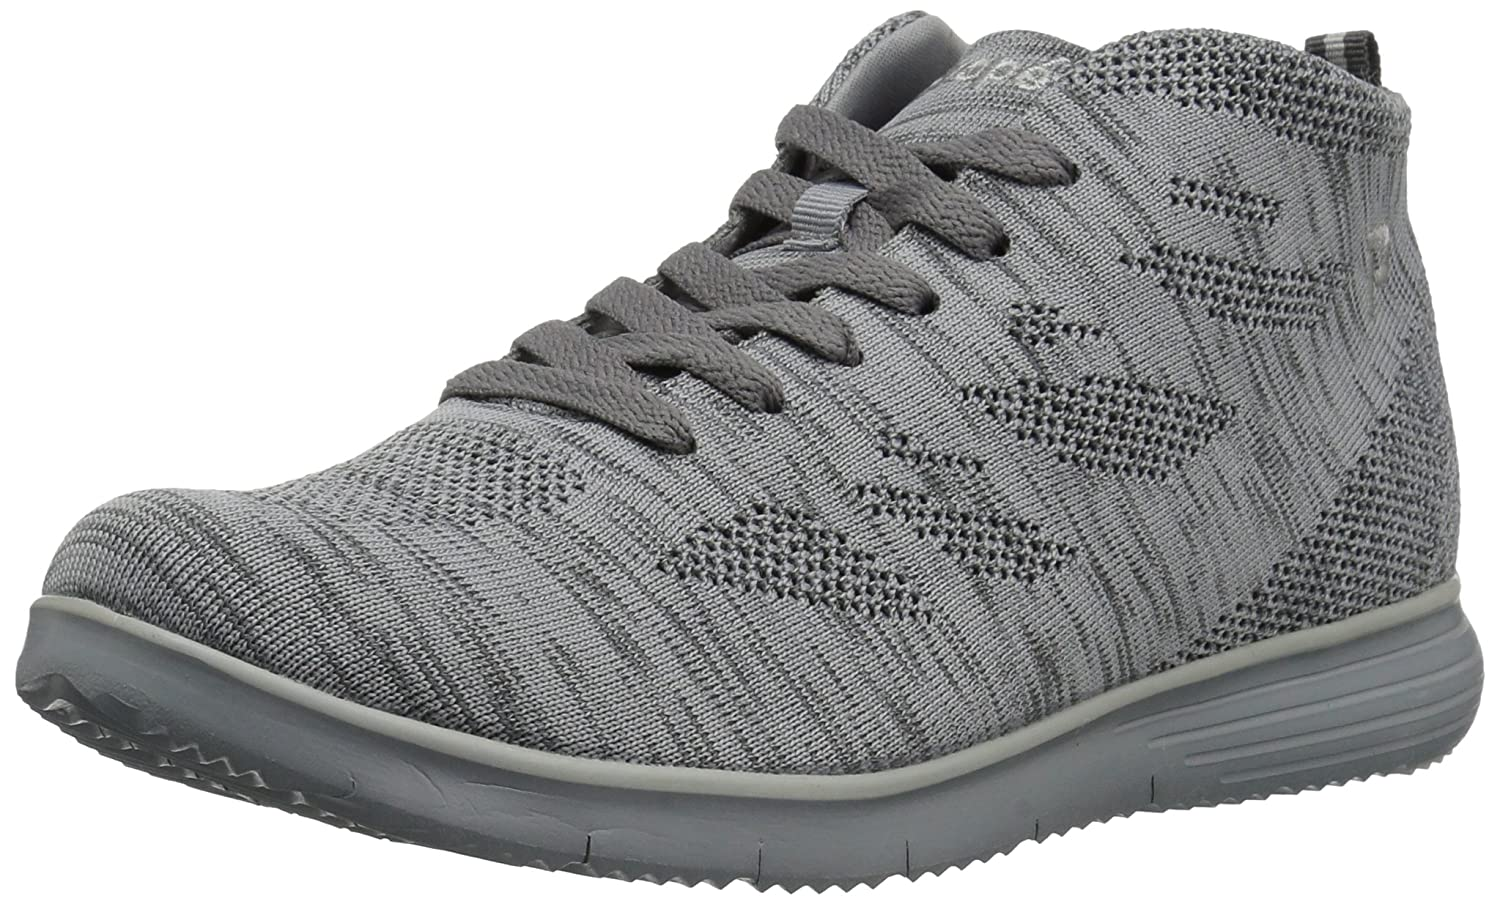 Propet Women's TravelFit Hi Walking Shoe B01N59VXRZ 7 B(M) US|Lt Grey